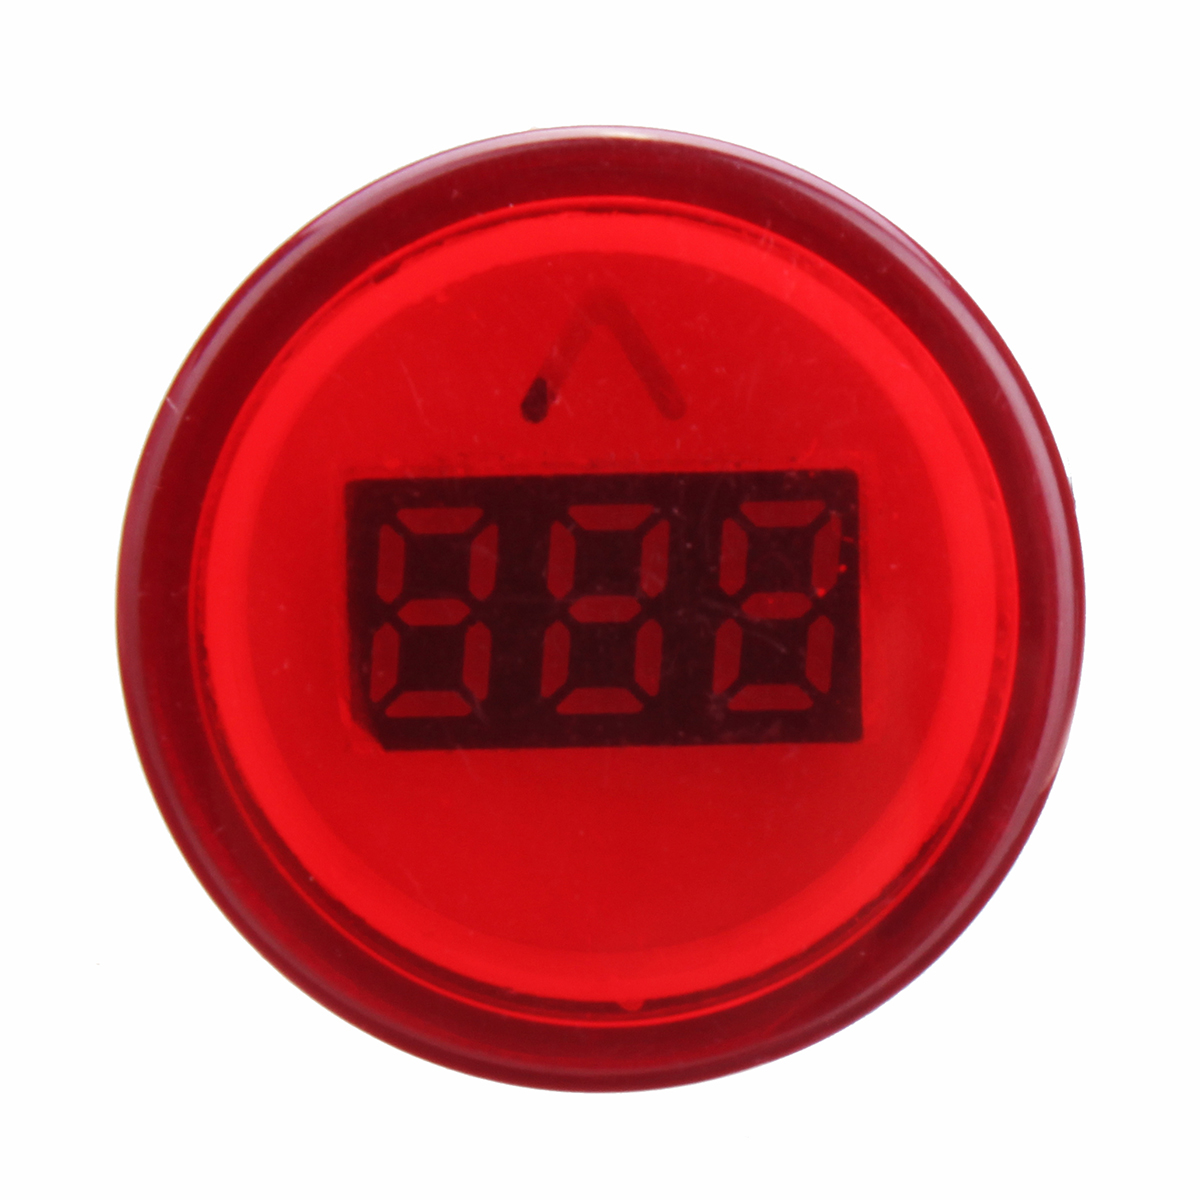 22mm AC60-500V LED Digital Display Voltmeter Voltage Meter Indicator Light